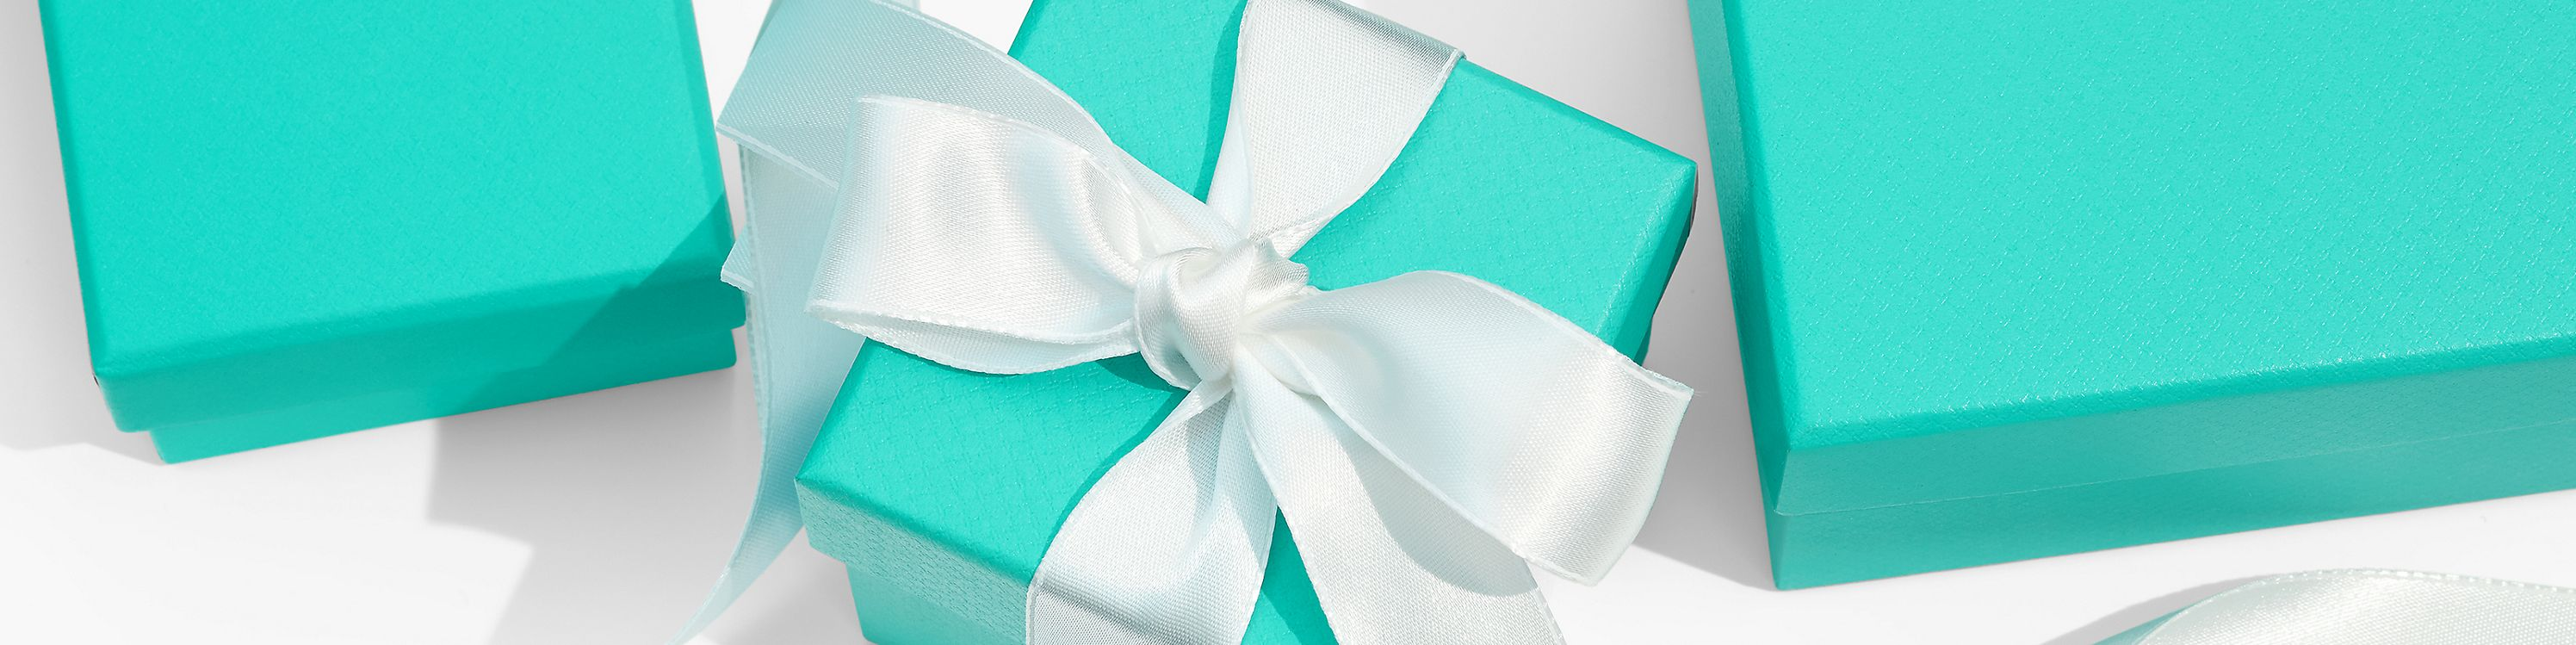 Tiffany & Co. Bestsellers